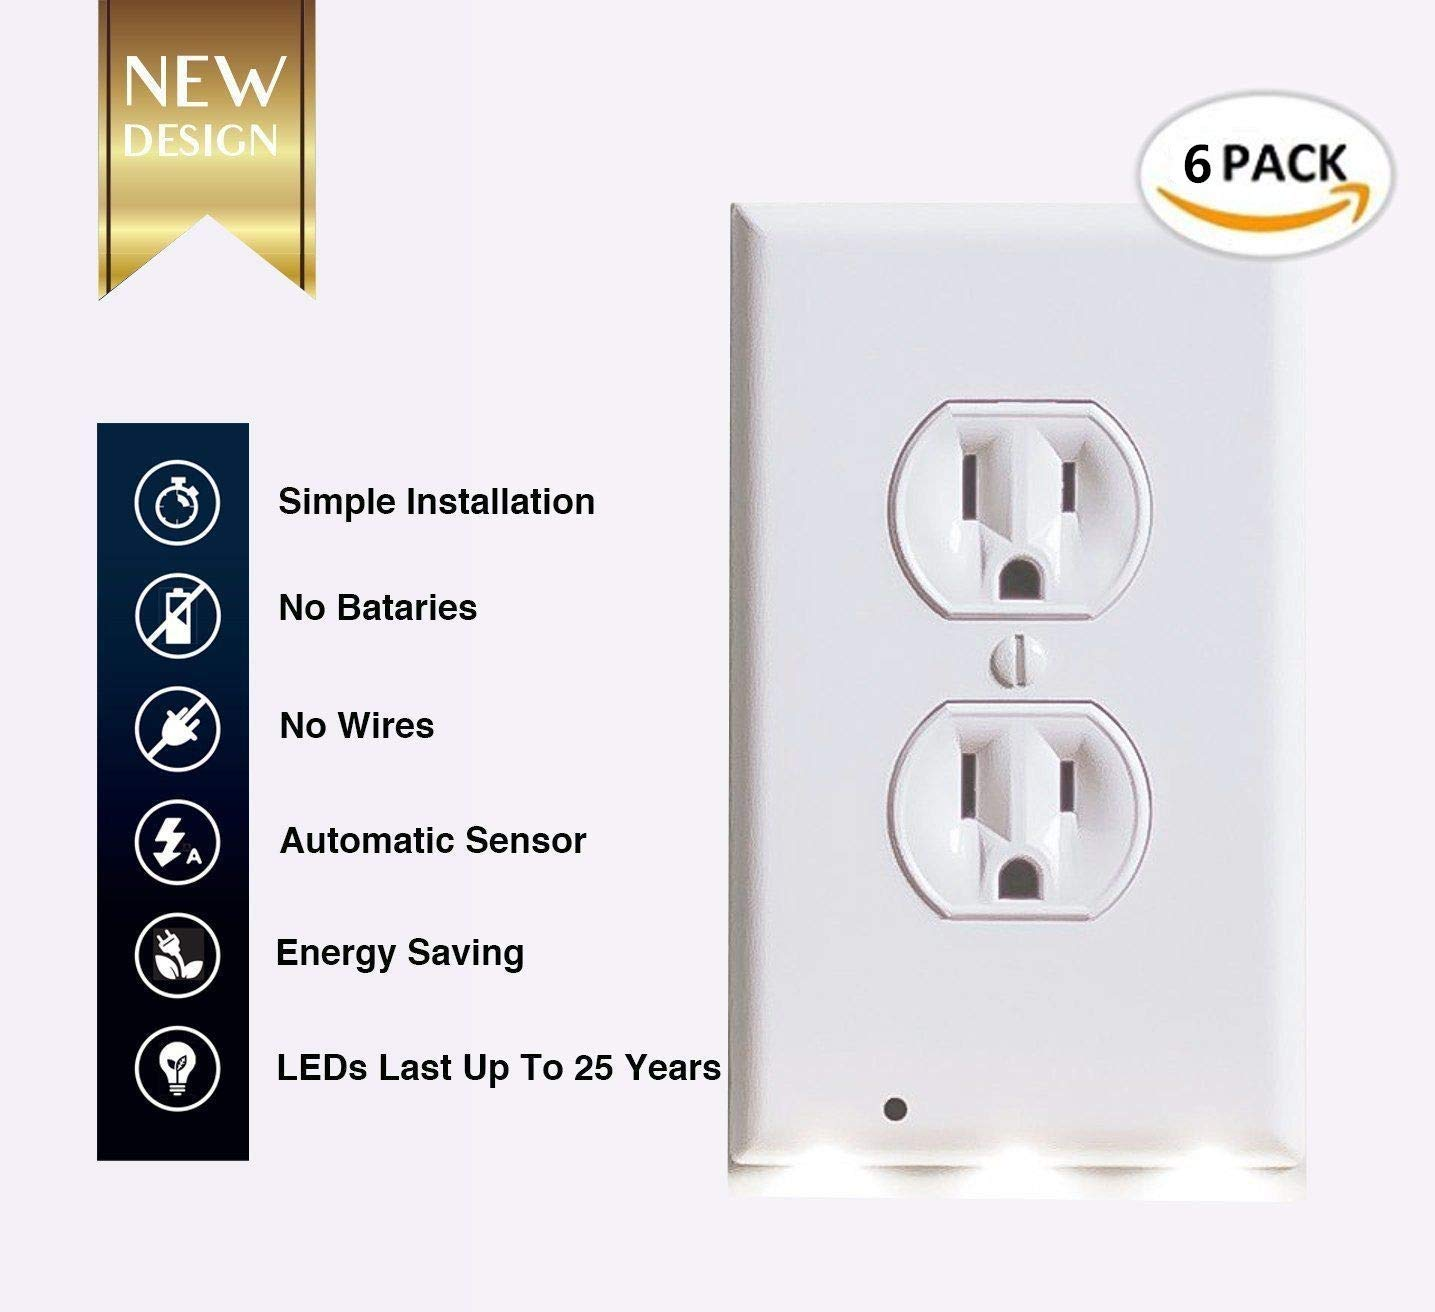 6Pack Illuminated Wall Outlet Plate, LED Night Light Plug Cover with Sensor Inductive Guidelight Easy Snap On No Wire Or Battery Needed Hallway Bathroom Stairway Decor by Sunshine-Light (Image #3)